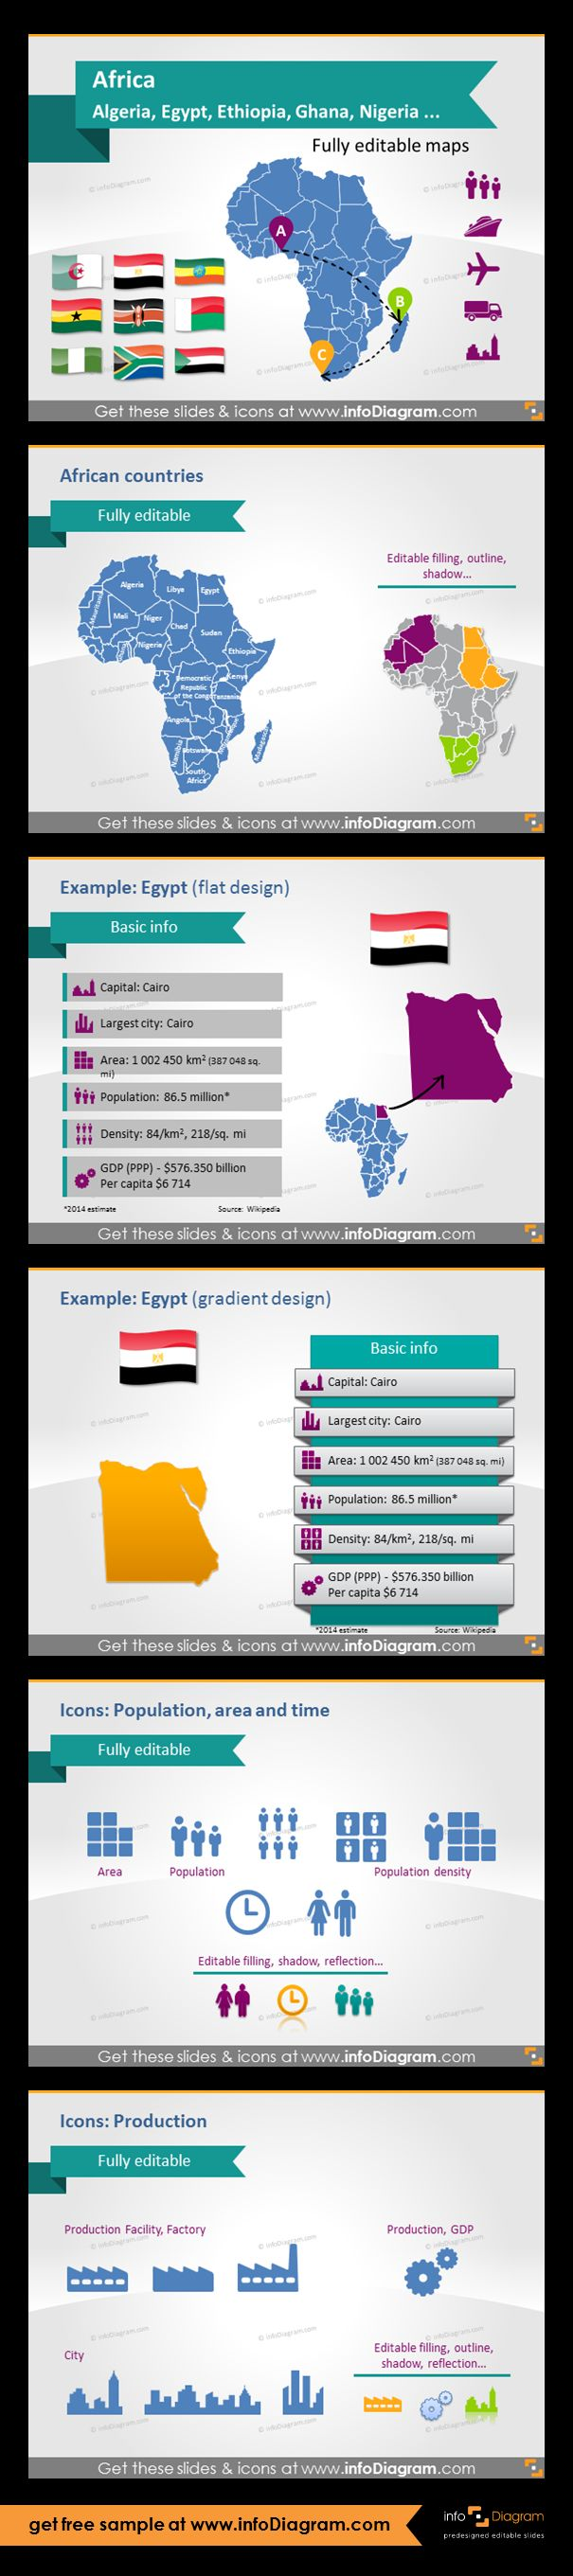 Africa countries - editable PowerPoint maps, localization and transport icons, country statistics. Fully editable maps, icons, arrows. Country statistics data: Population, Density, Area, GDP, Largest city, Capital. Icons for showing population, area, time and production.